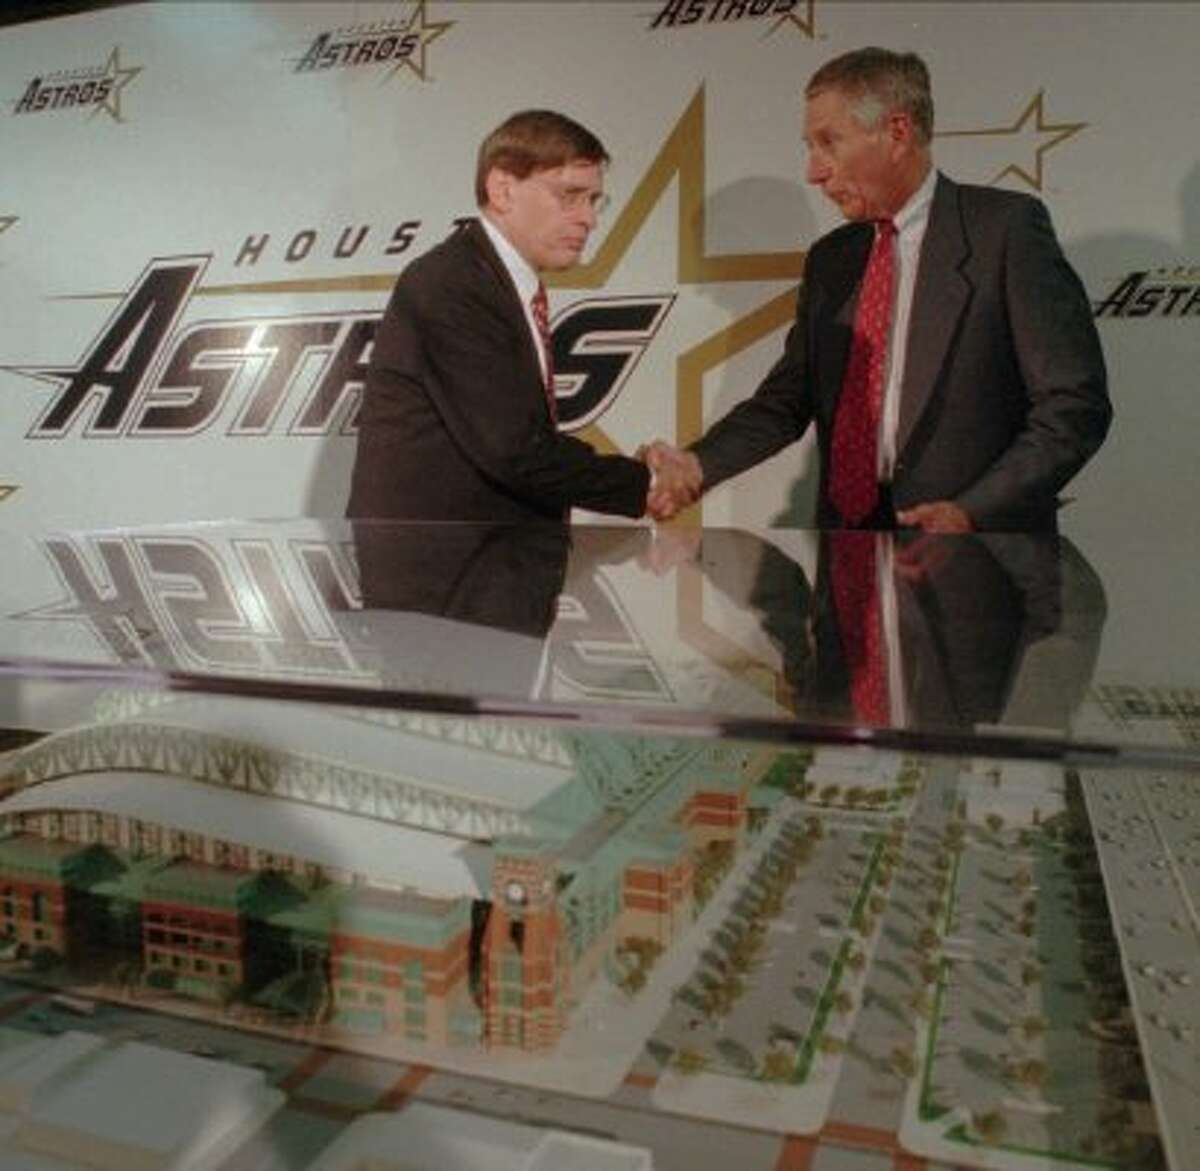 In 1998, Enron had made it. The company that formed from the merger between Houston Natural Gas and InterNorth was set to have its name plastered on the brand new Astros stadium. Enron Field was scheduled to open in 2000 with a 30-year lease agreement. That same year, Andrew Fastow was named the chief financial officer for Enron. (DAVID J. PHILLIP / AP)